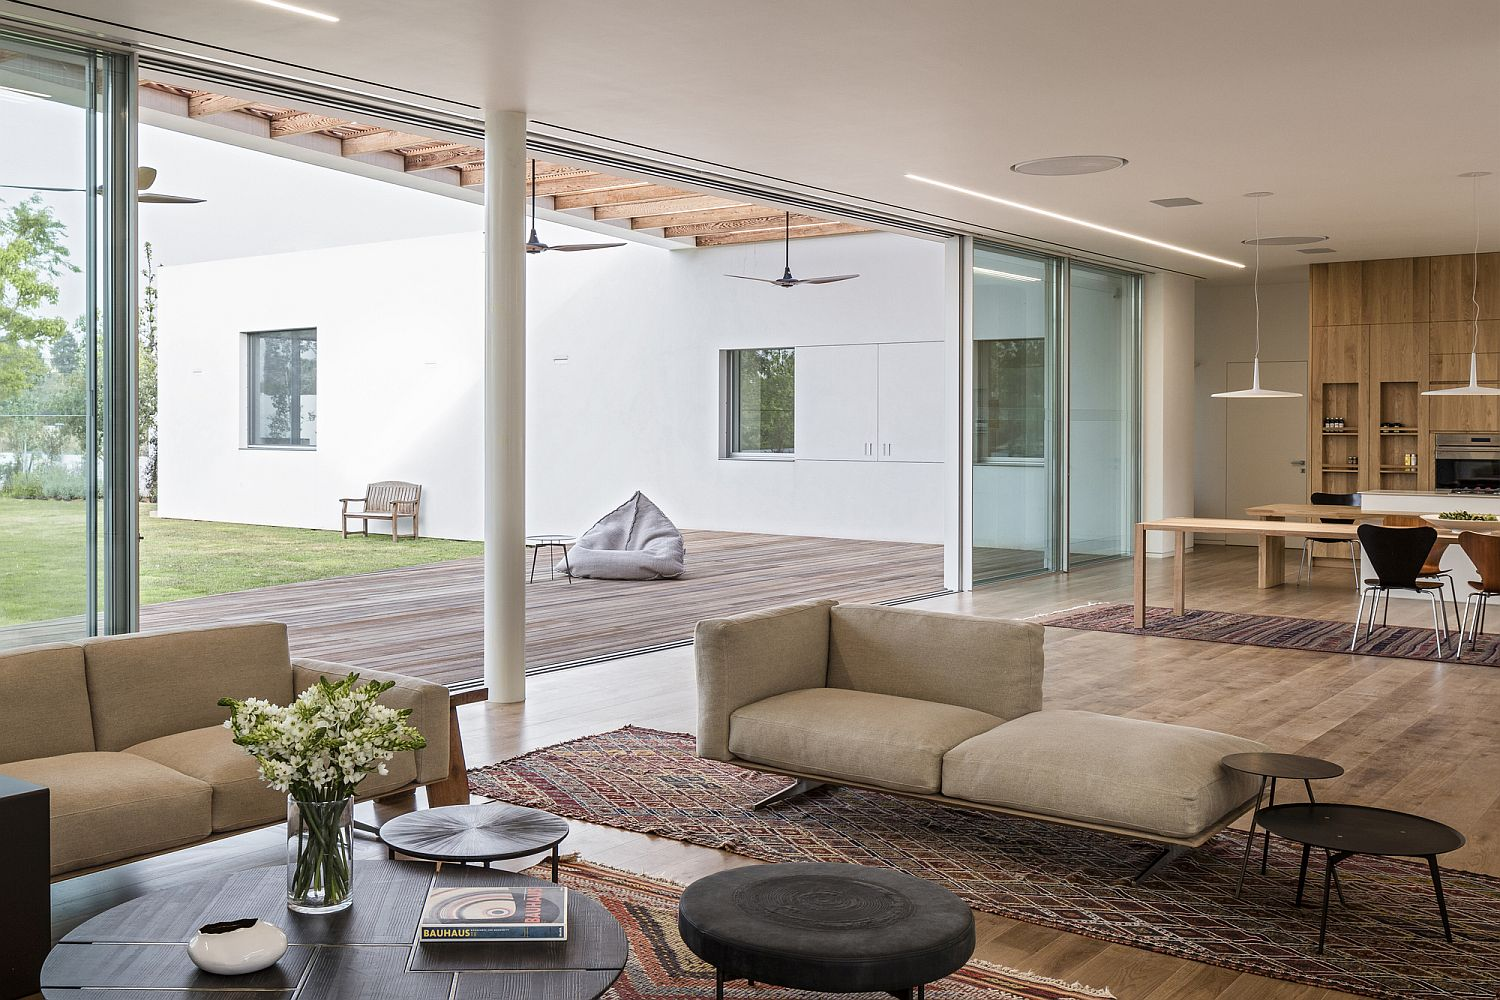 Bright and cheerful modern living room connected with the pergola covered deck